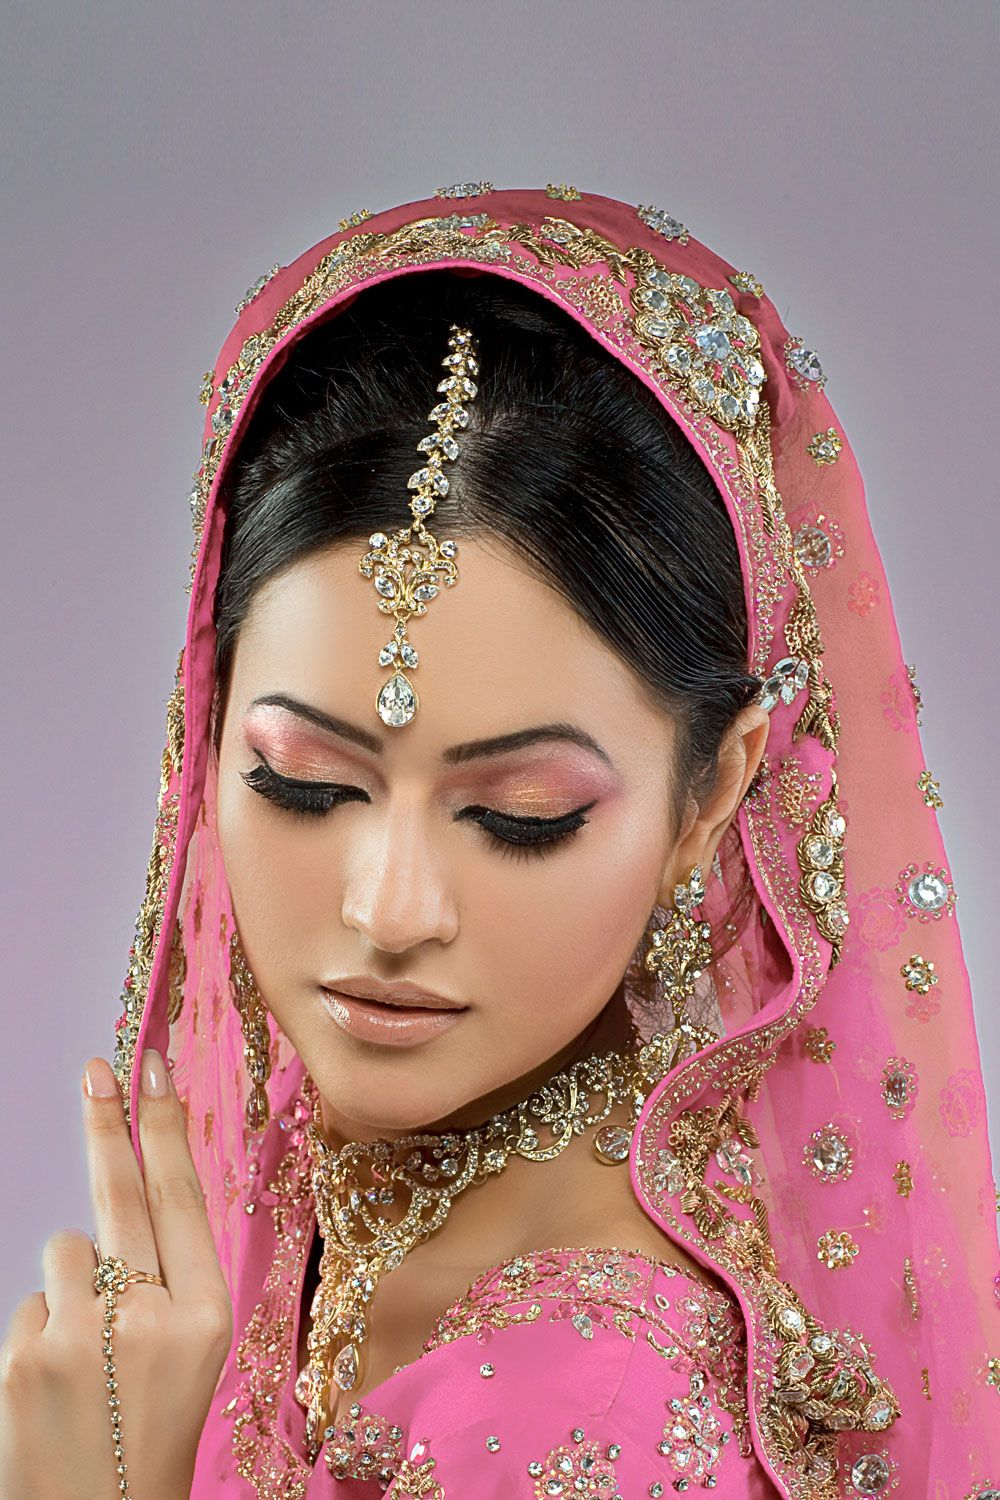 Traditional Indian Wedding makeup. Love the pinks and